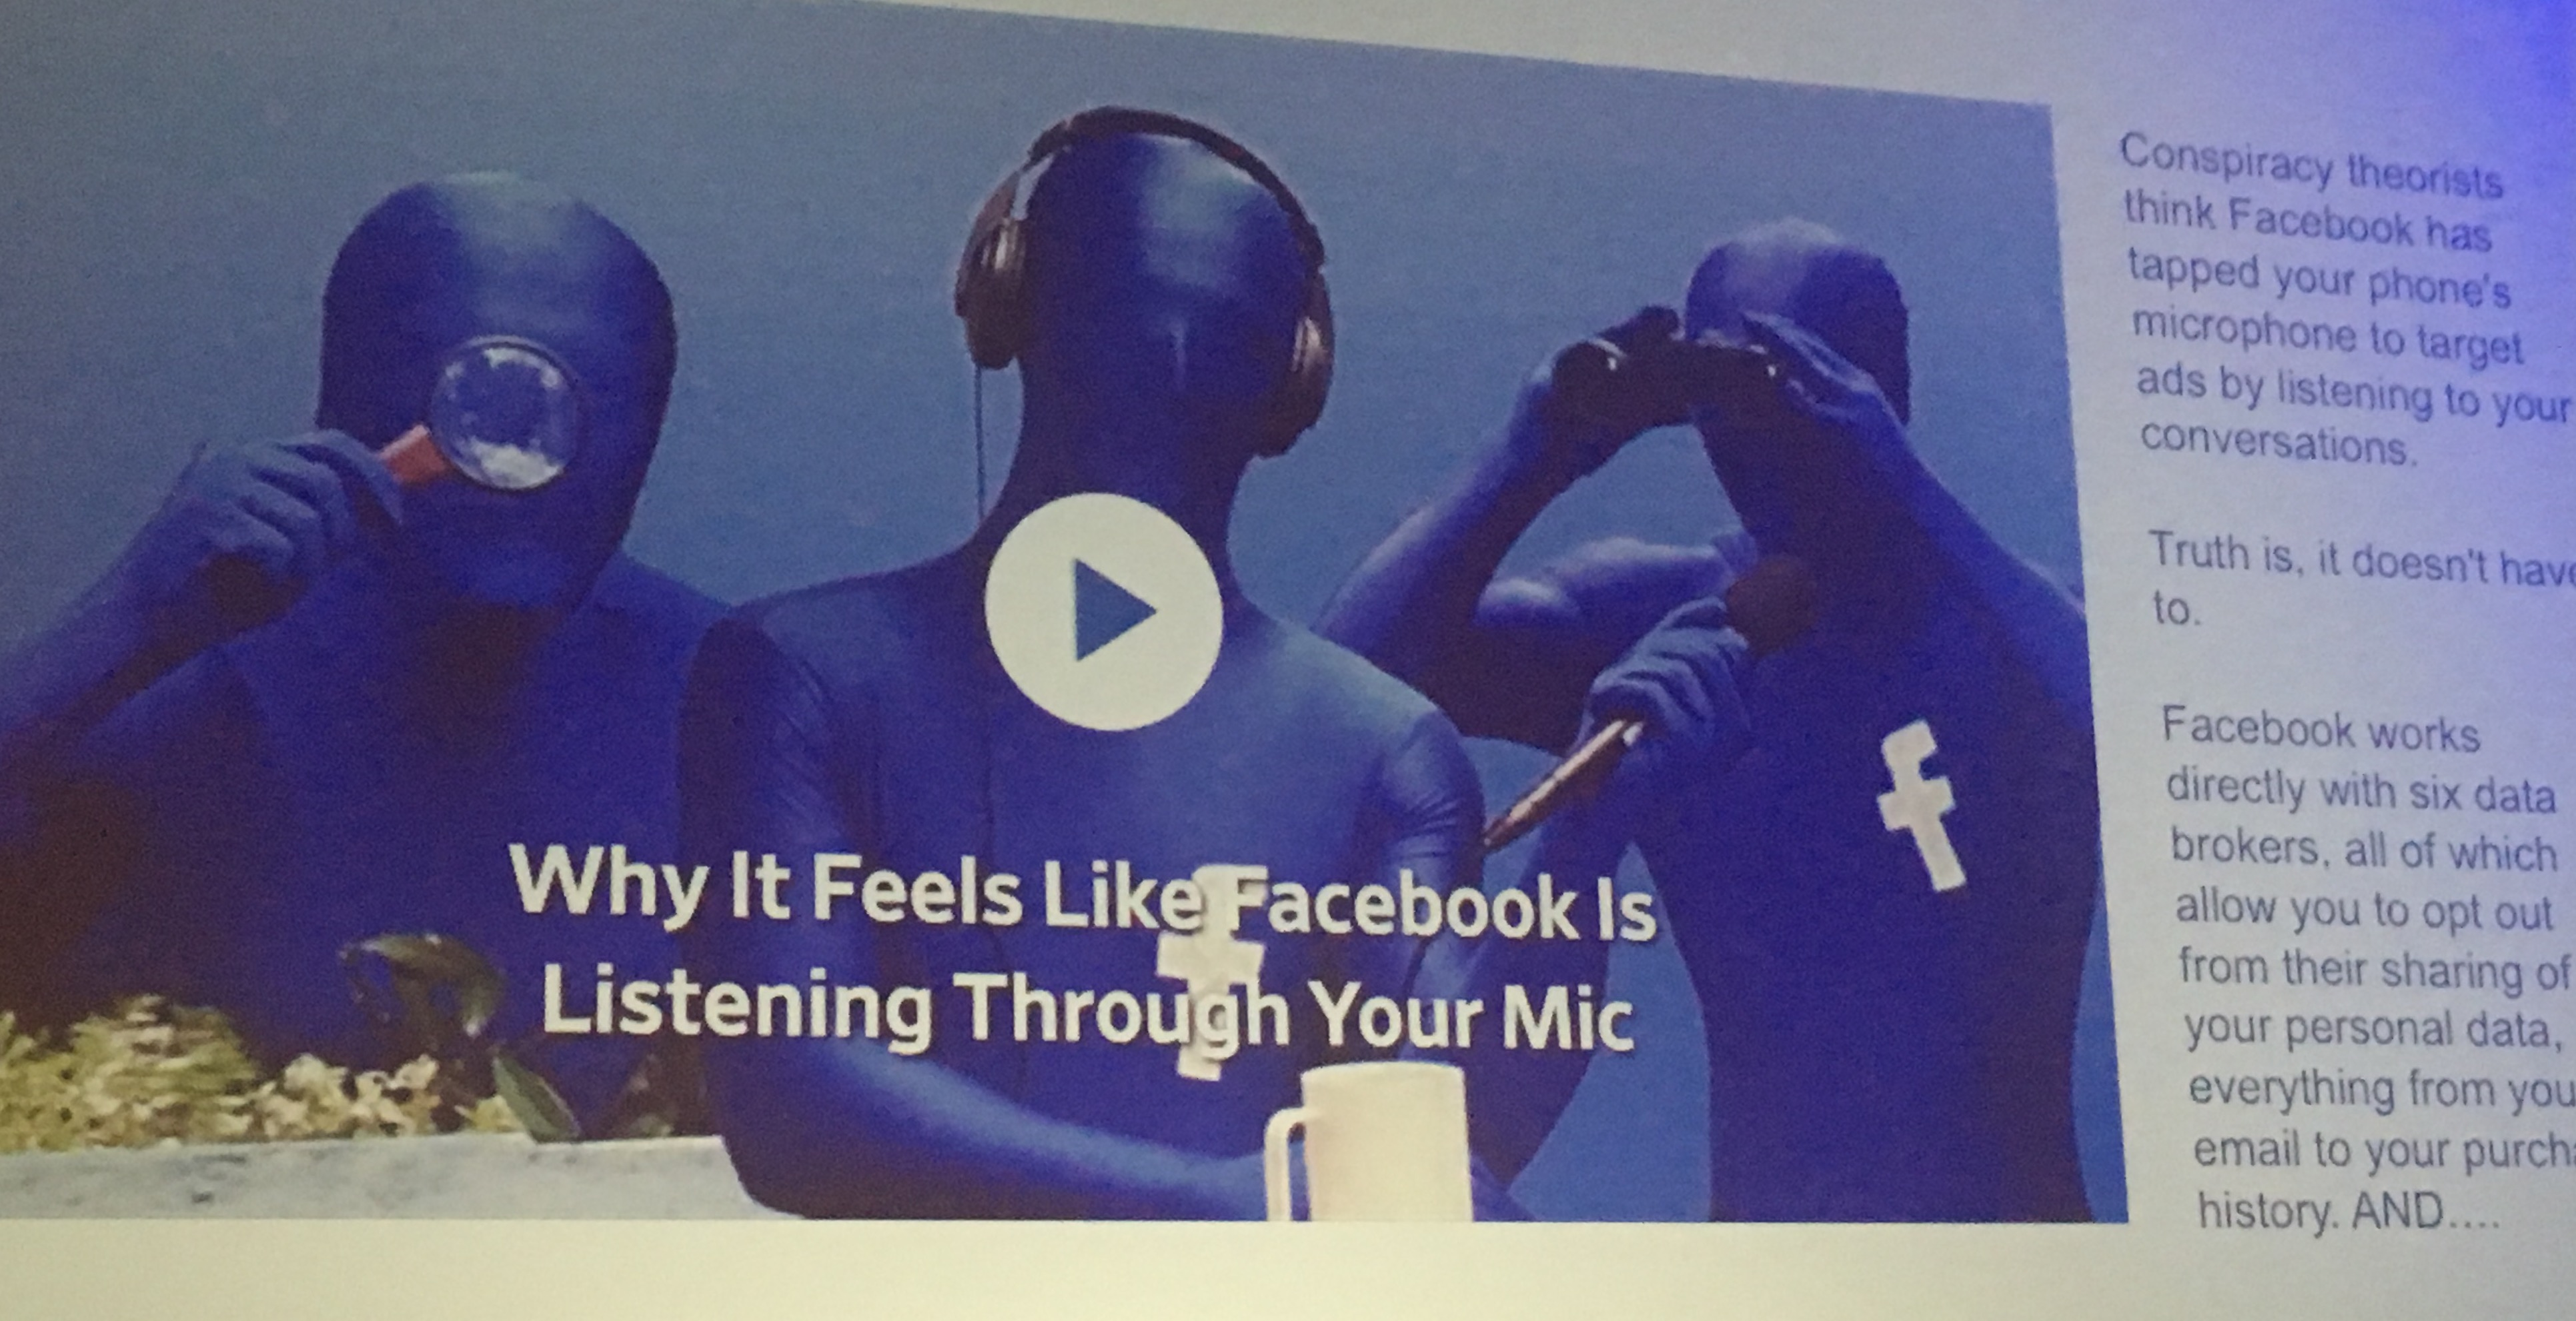 Why it feels like Facebook is listening through your mic